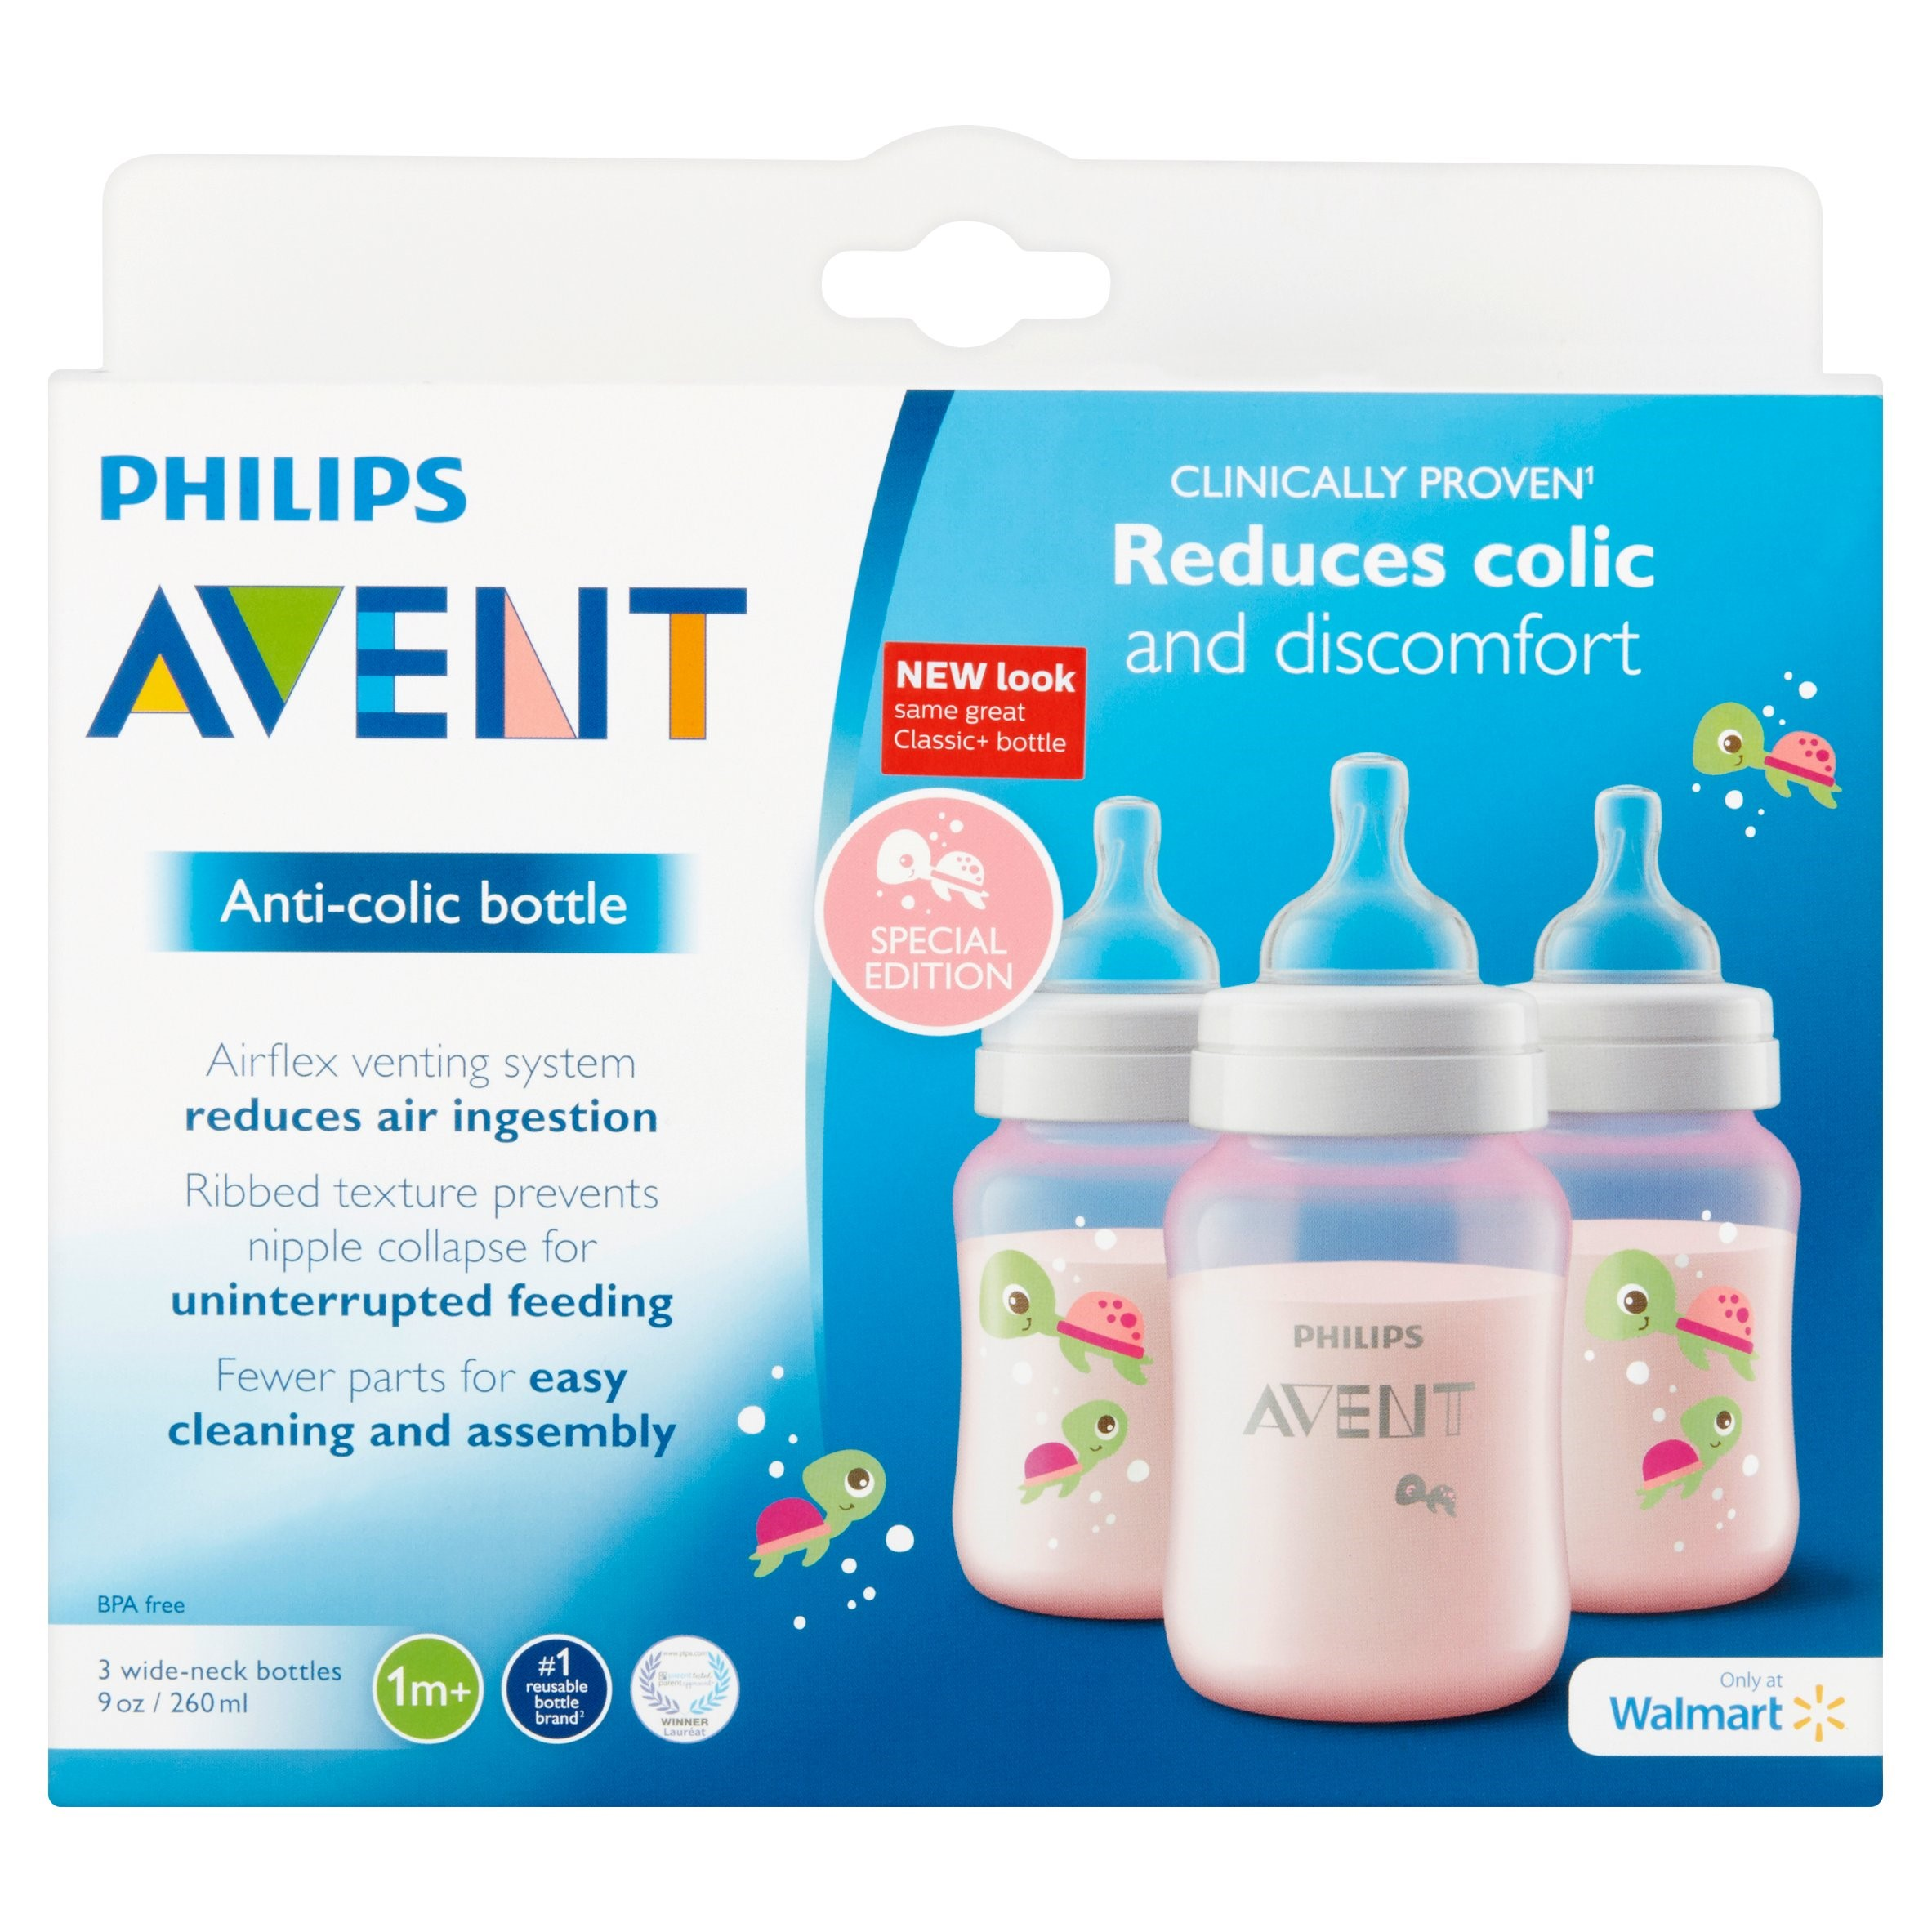 Philips Avent 9 oz Anti-Colic Wide-Neck Bottles 1m+, 3 Count by Philips AVENT